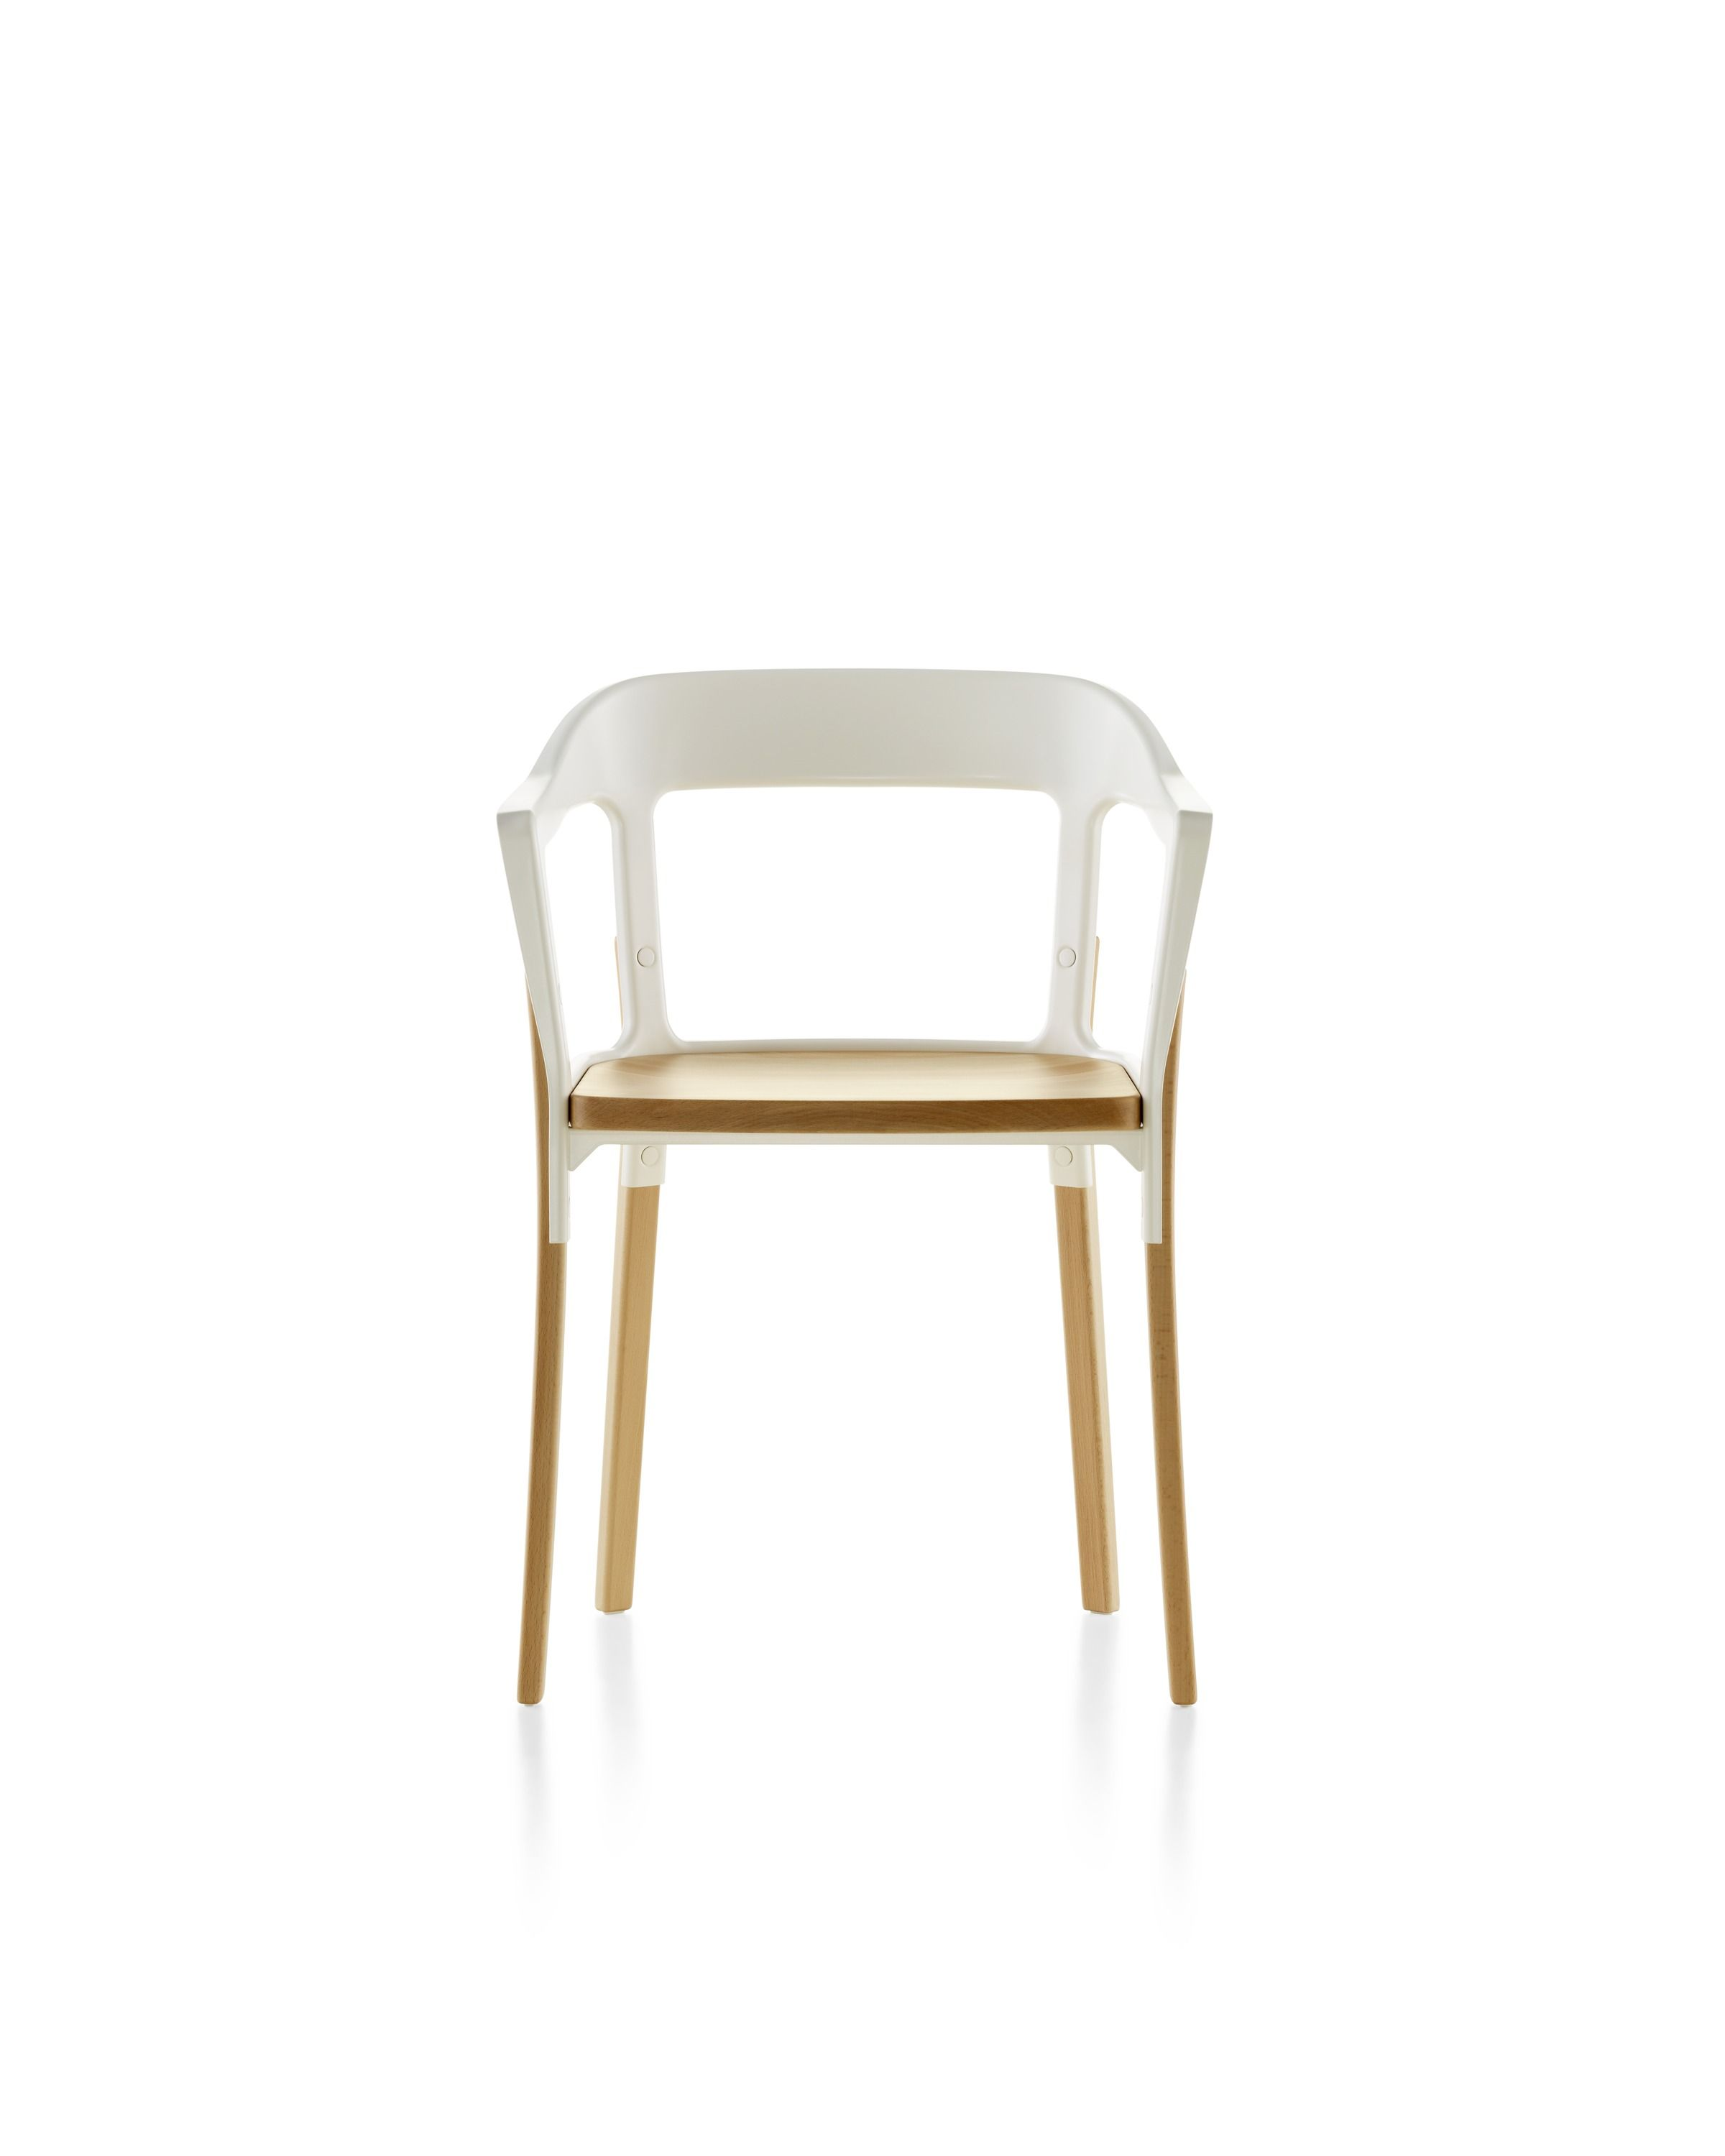 Steelwood Chair by Ronan and Erwan Bouroullec for Magis | Herman Miller